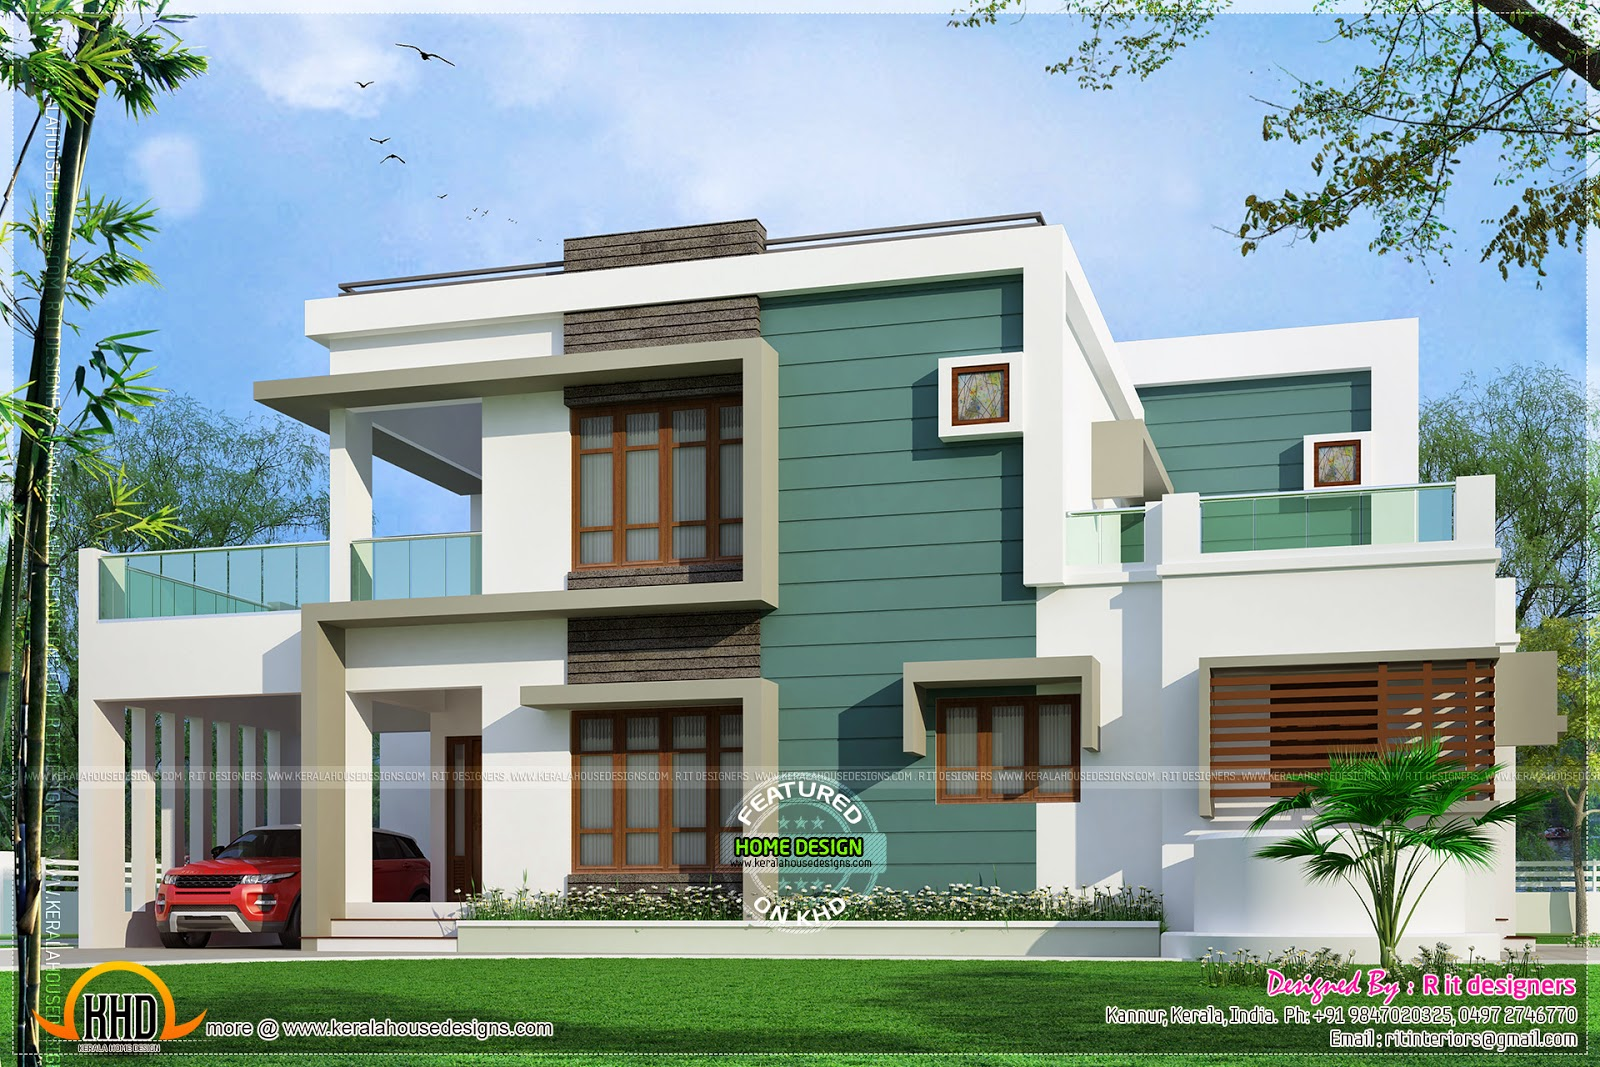 Kannur home design kerala home design and floor plans for House model design photos